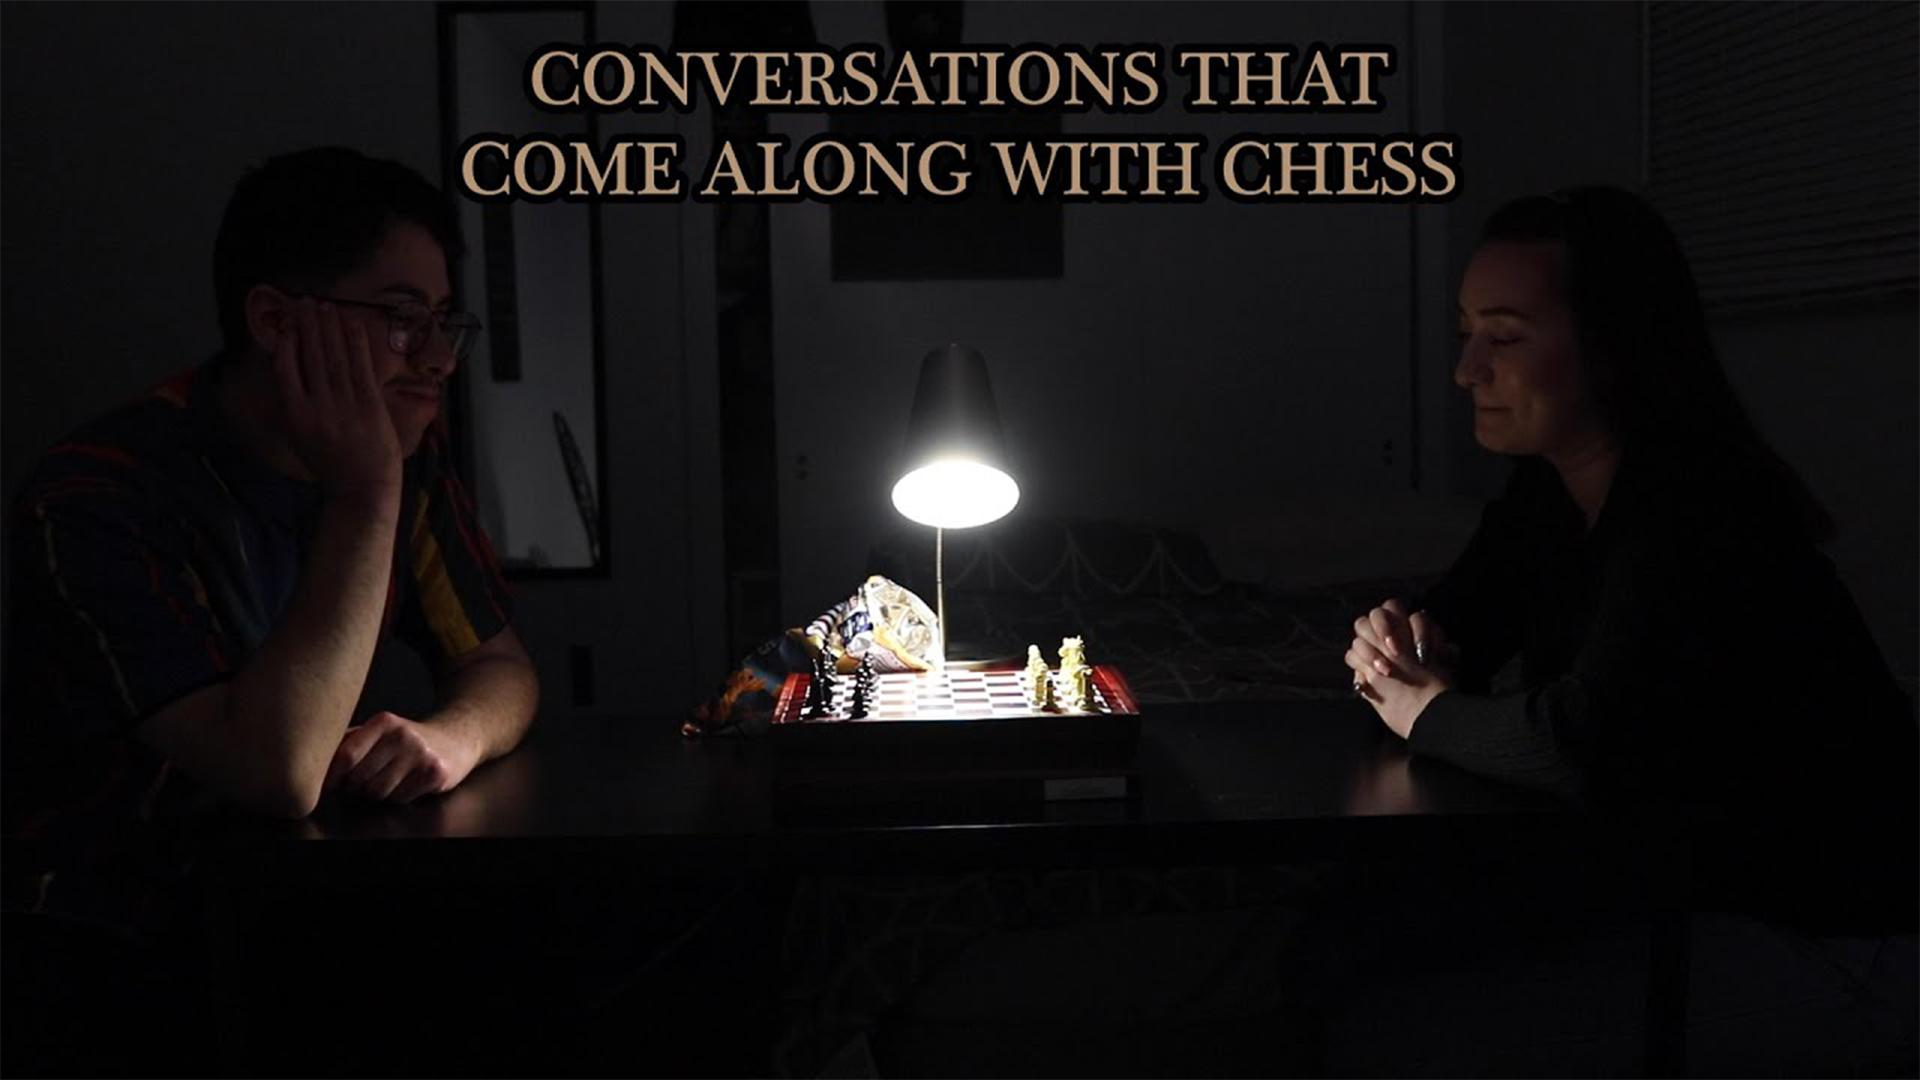 Conversations That Come Along With Chess